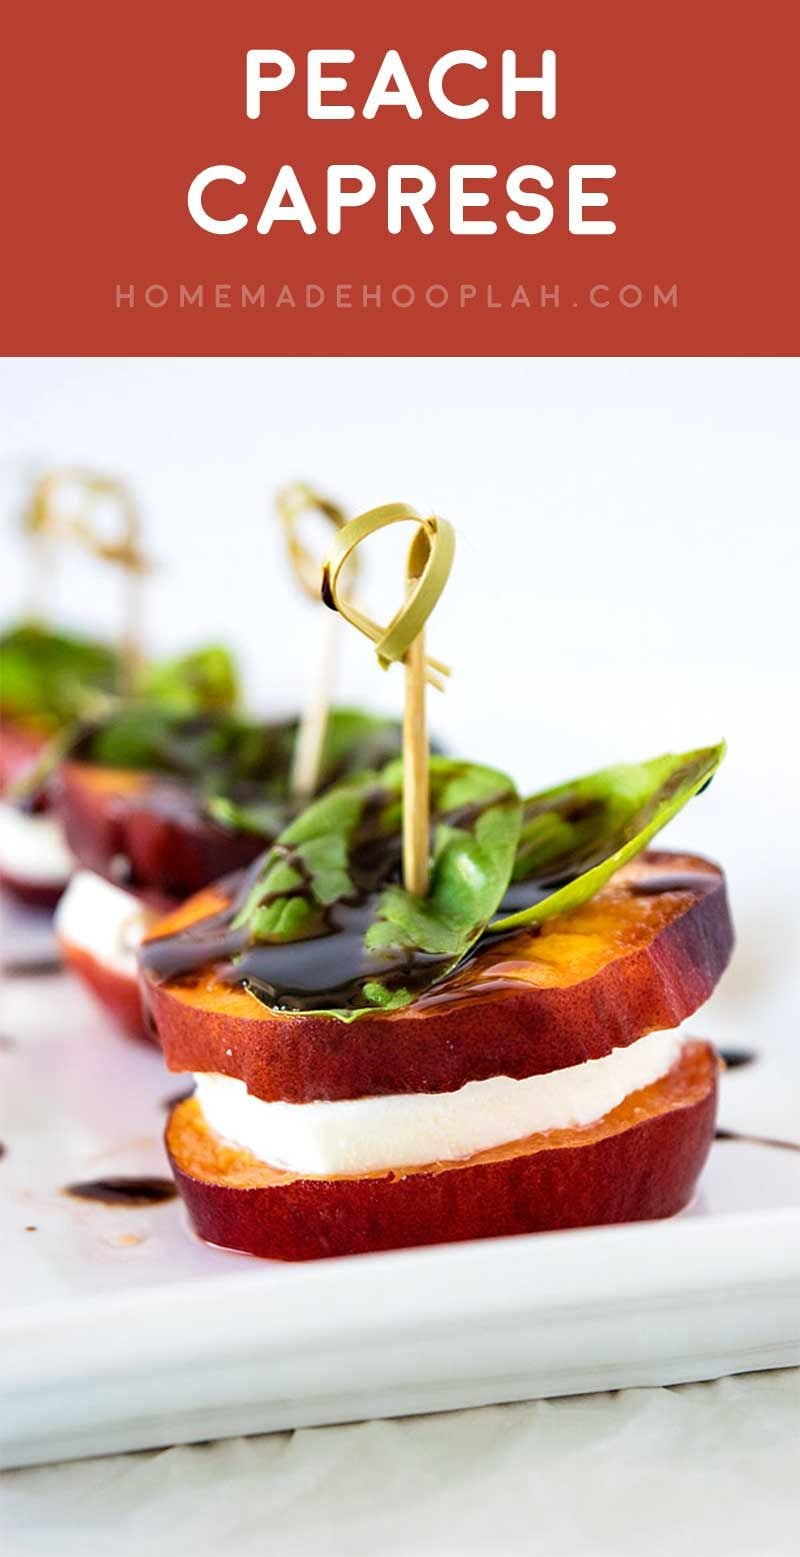 Peach Caprese! A fresh way to enjoy classic caprese, with juicy peaches, soft mozzarella, balsamic reduction, and fresh basil. Makes for an easy party appetizer! | HomemadeHooplah.com